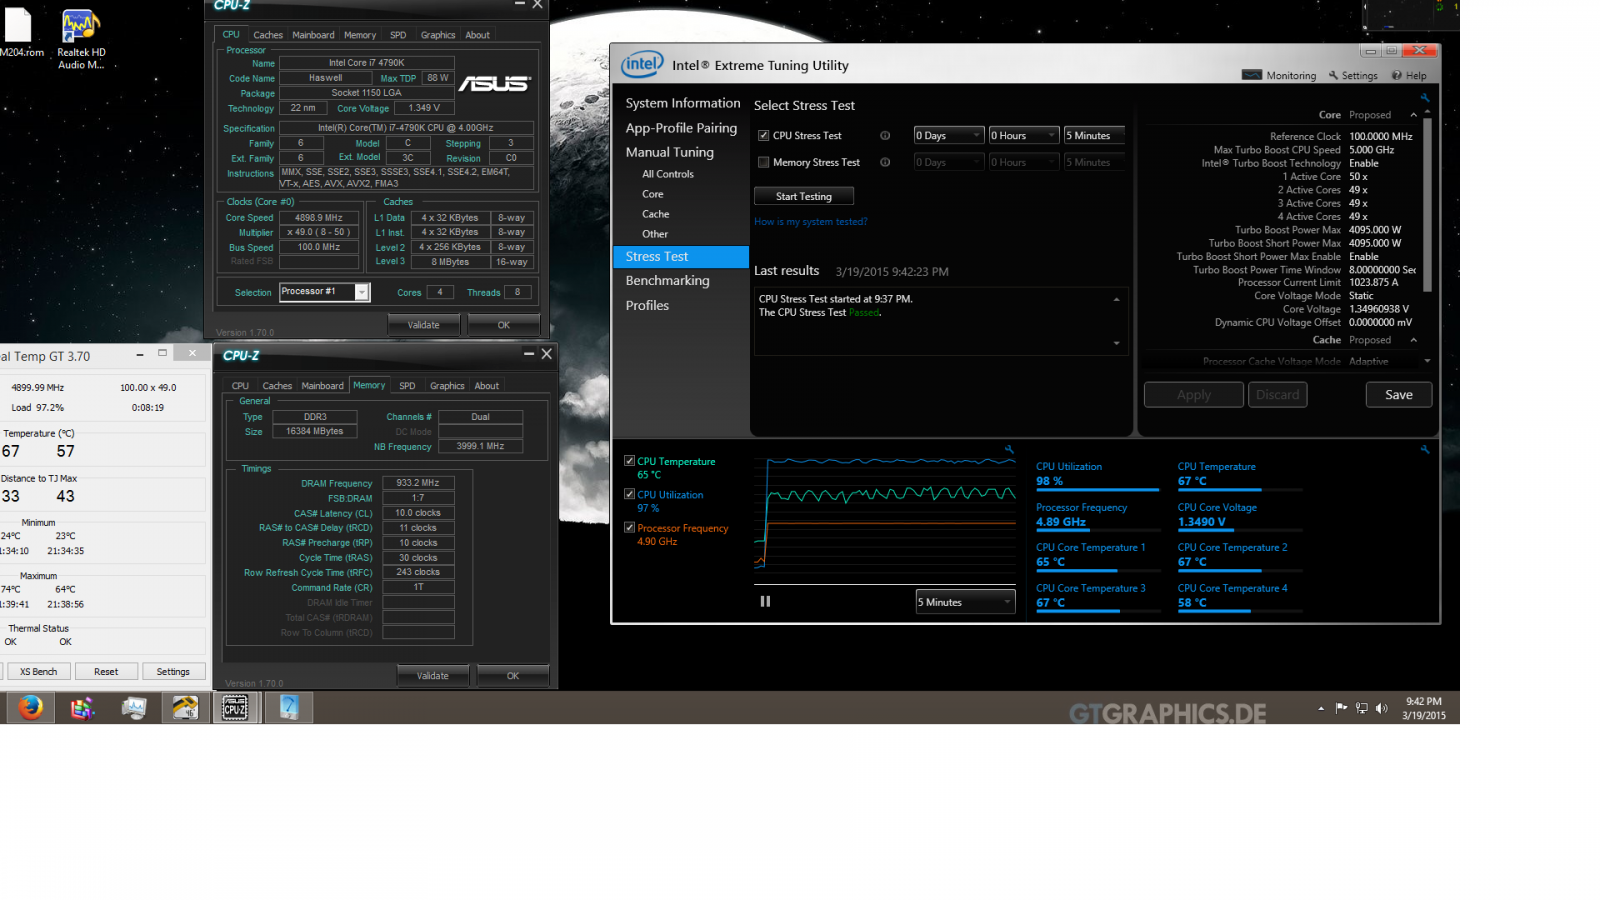 4790k Overclocking 5ghz or Not? - CPUs, Motherboards, and